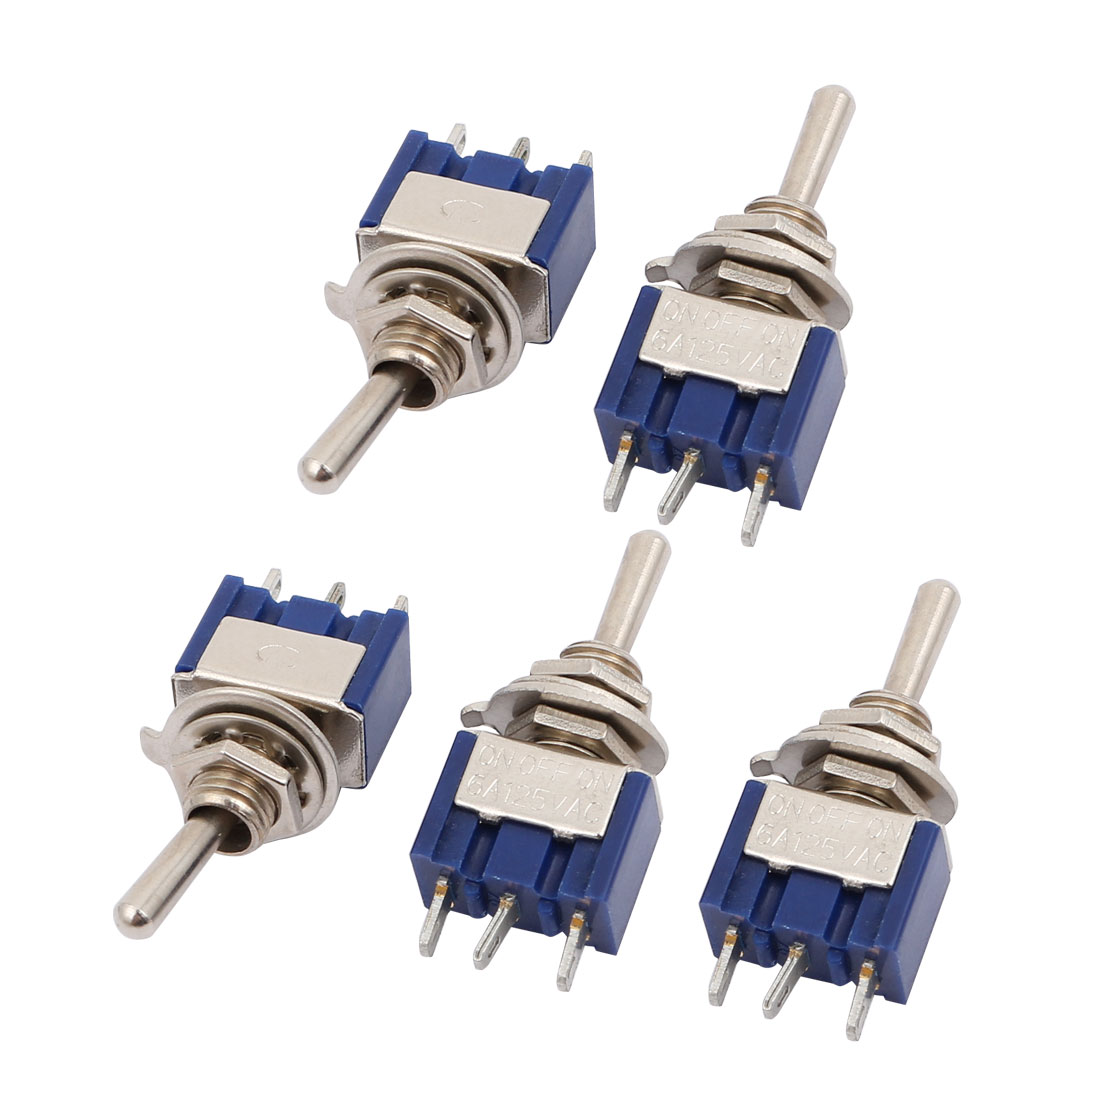 5 Pcs AC125V 6A 3 Terminal SPDT On/On 2 Position Mini Toggle Switch Blue